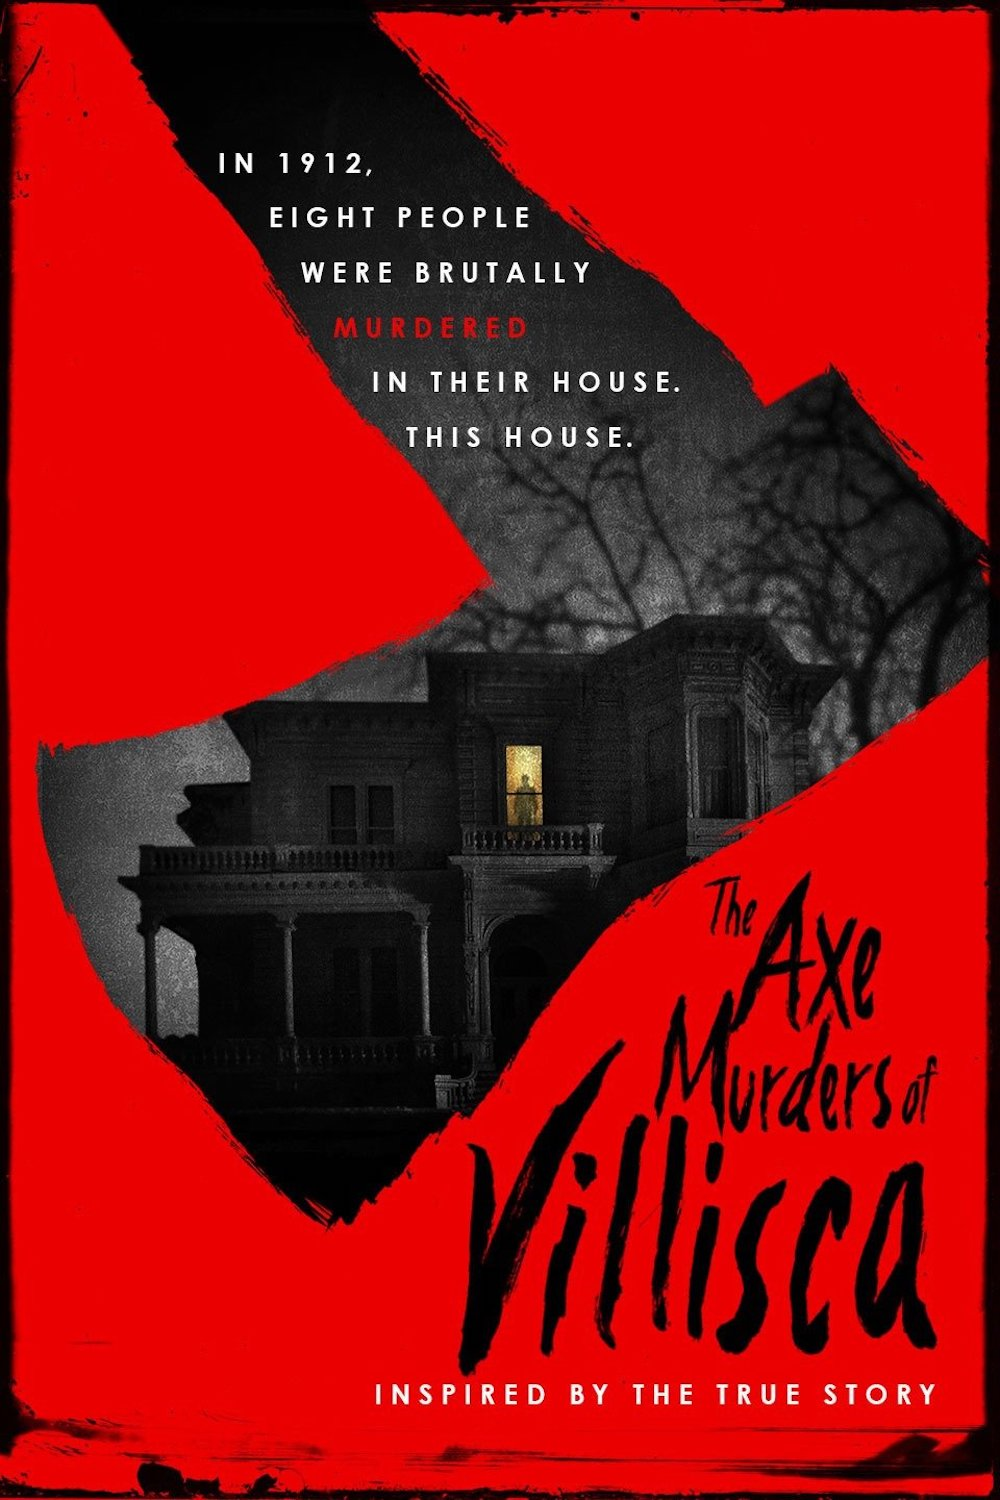 The Axe Murders of Villisca (2016) [1000 x 1500].jpg